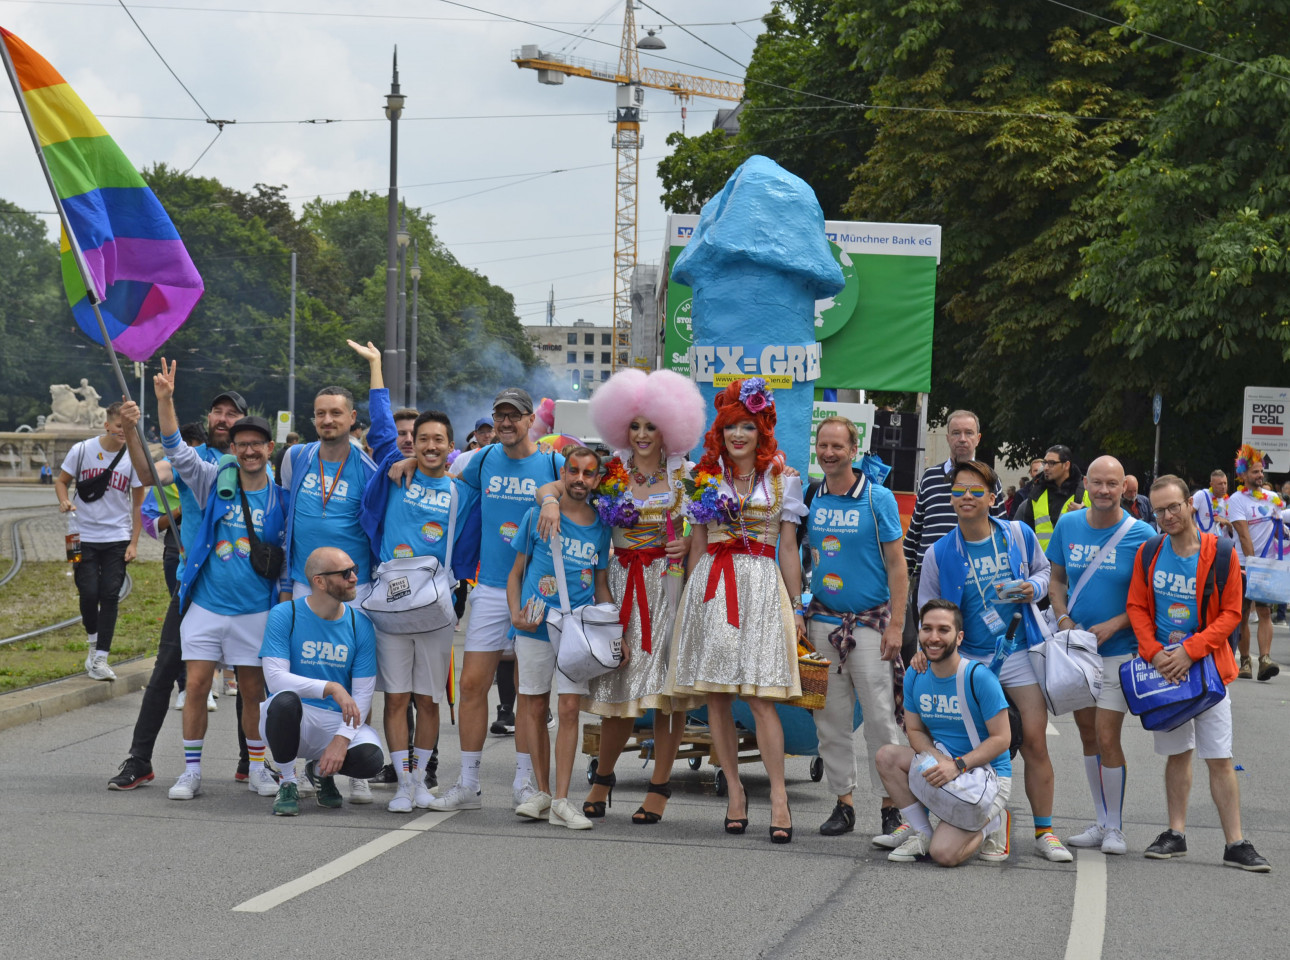 Muenchner Aidshilfe CSD2019 Parade SAG 03